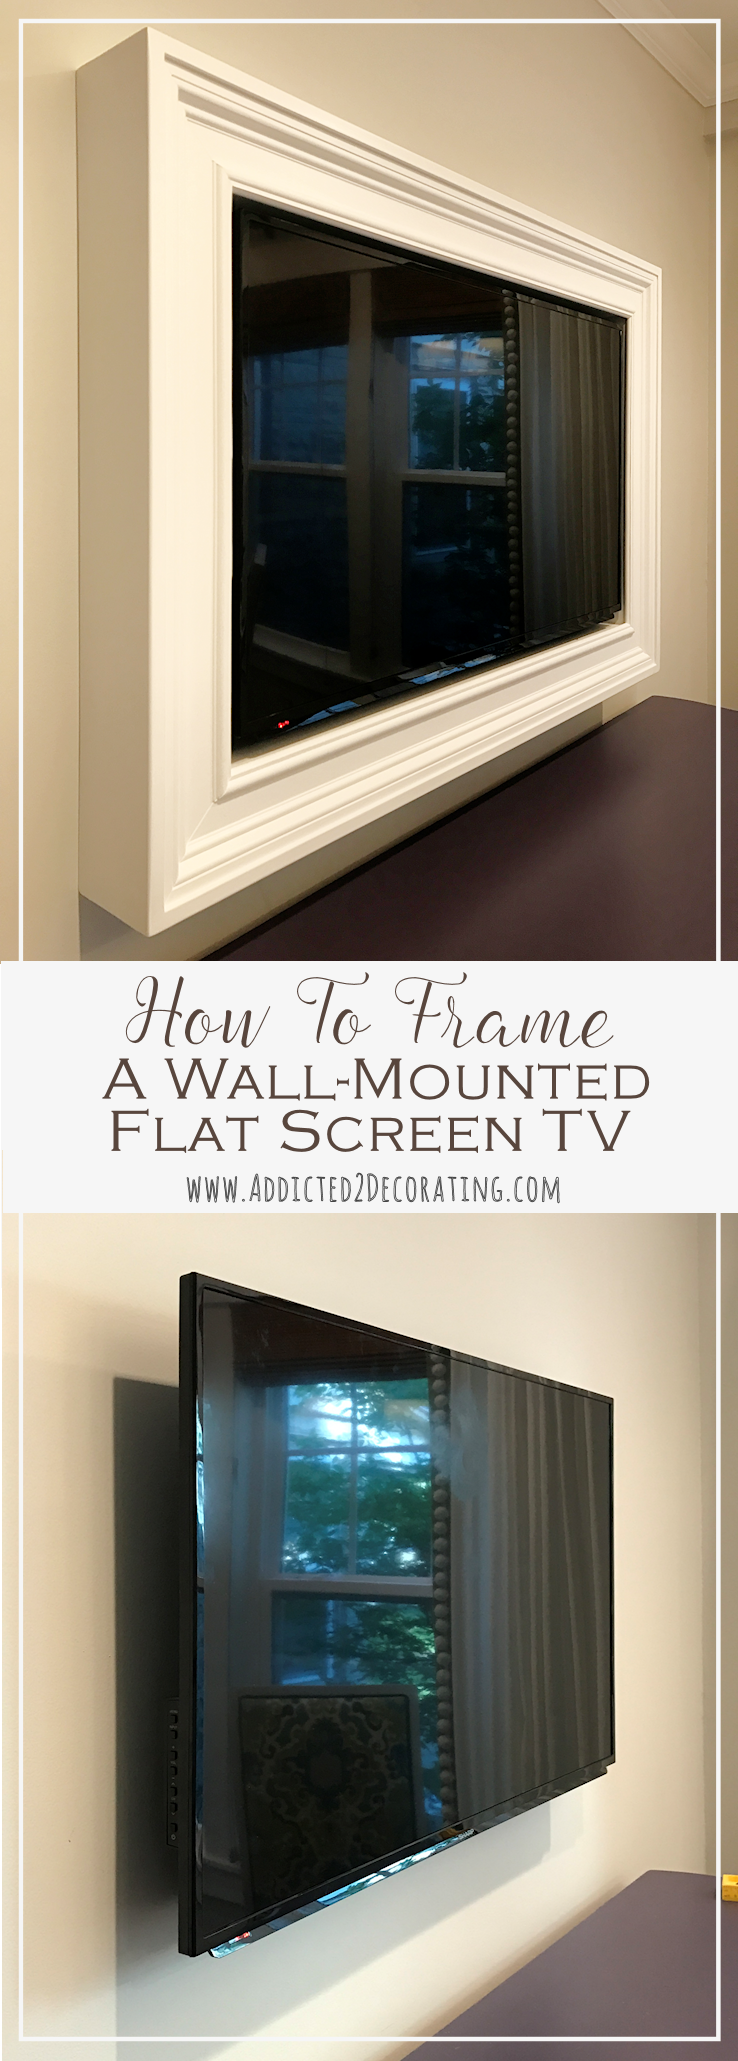 how to frame a wall mounted flat screen TV